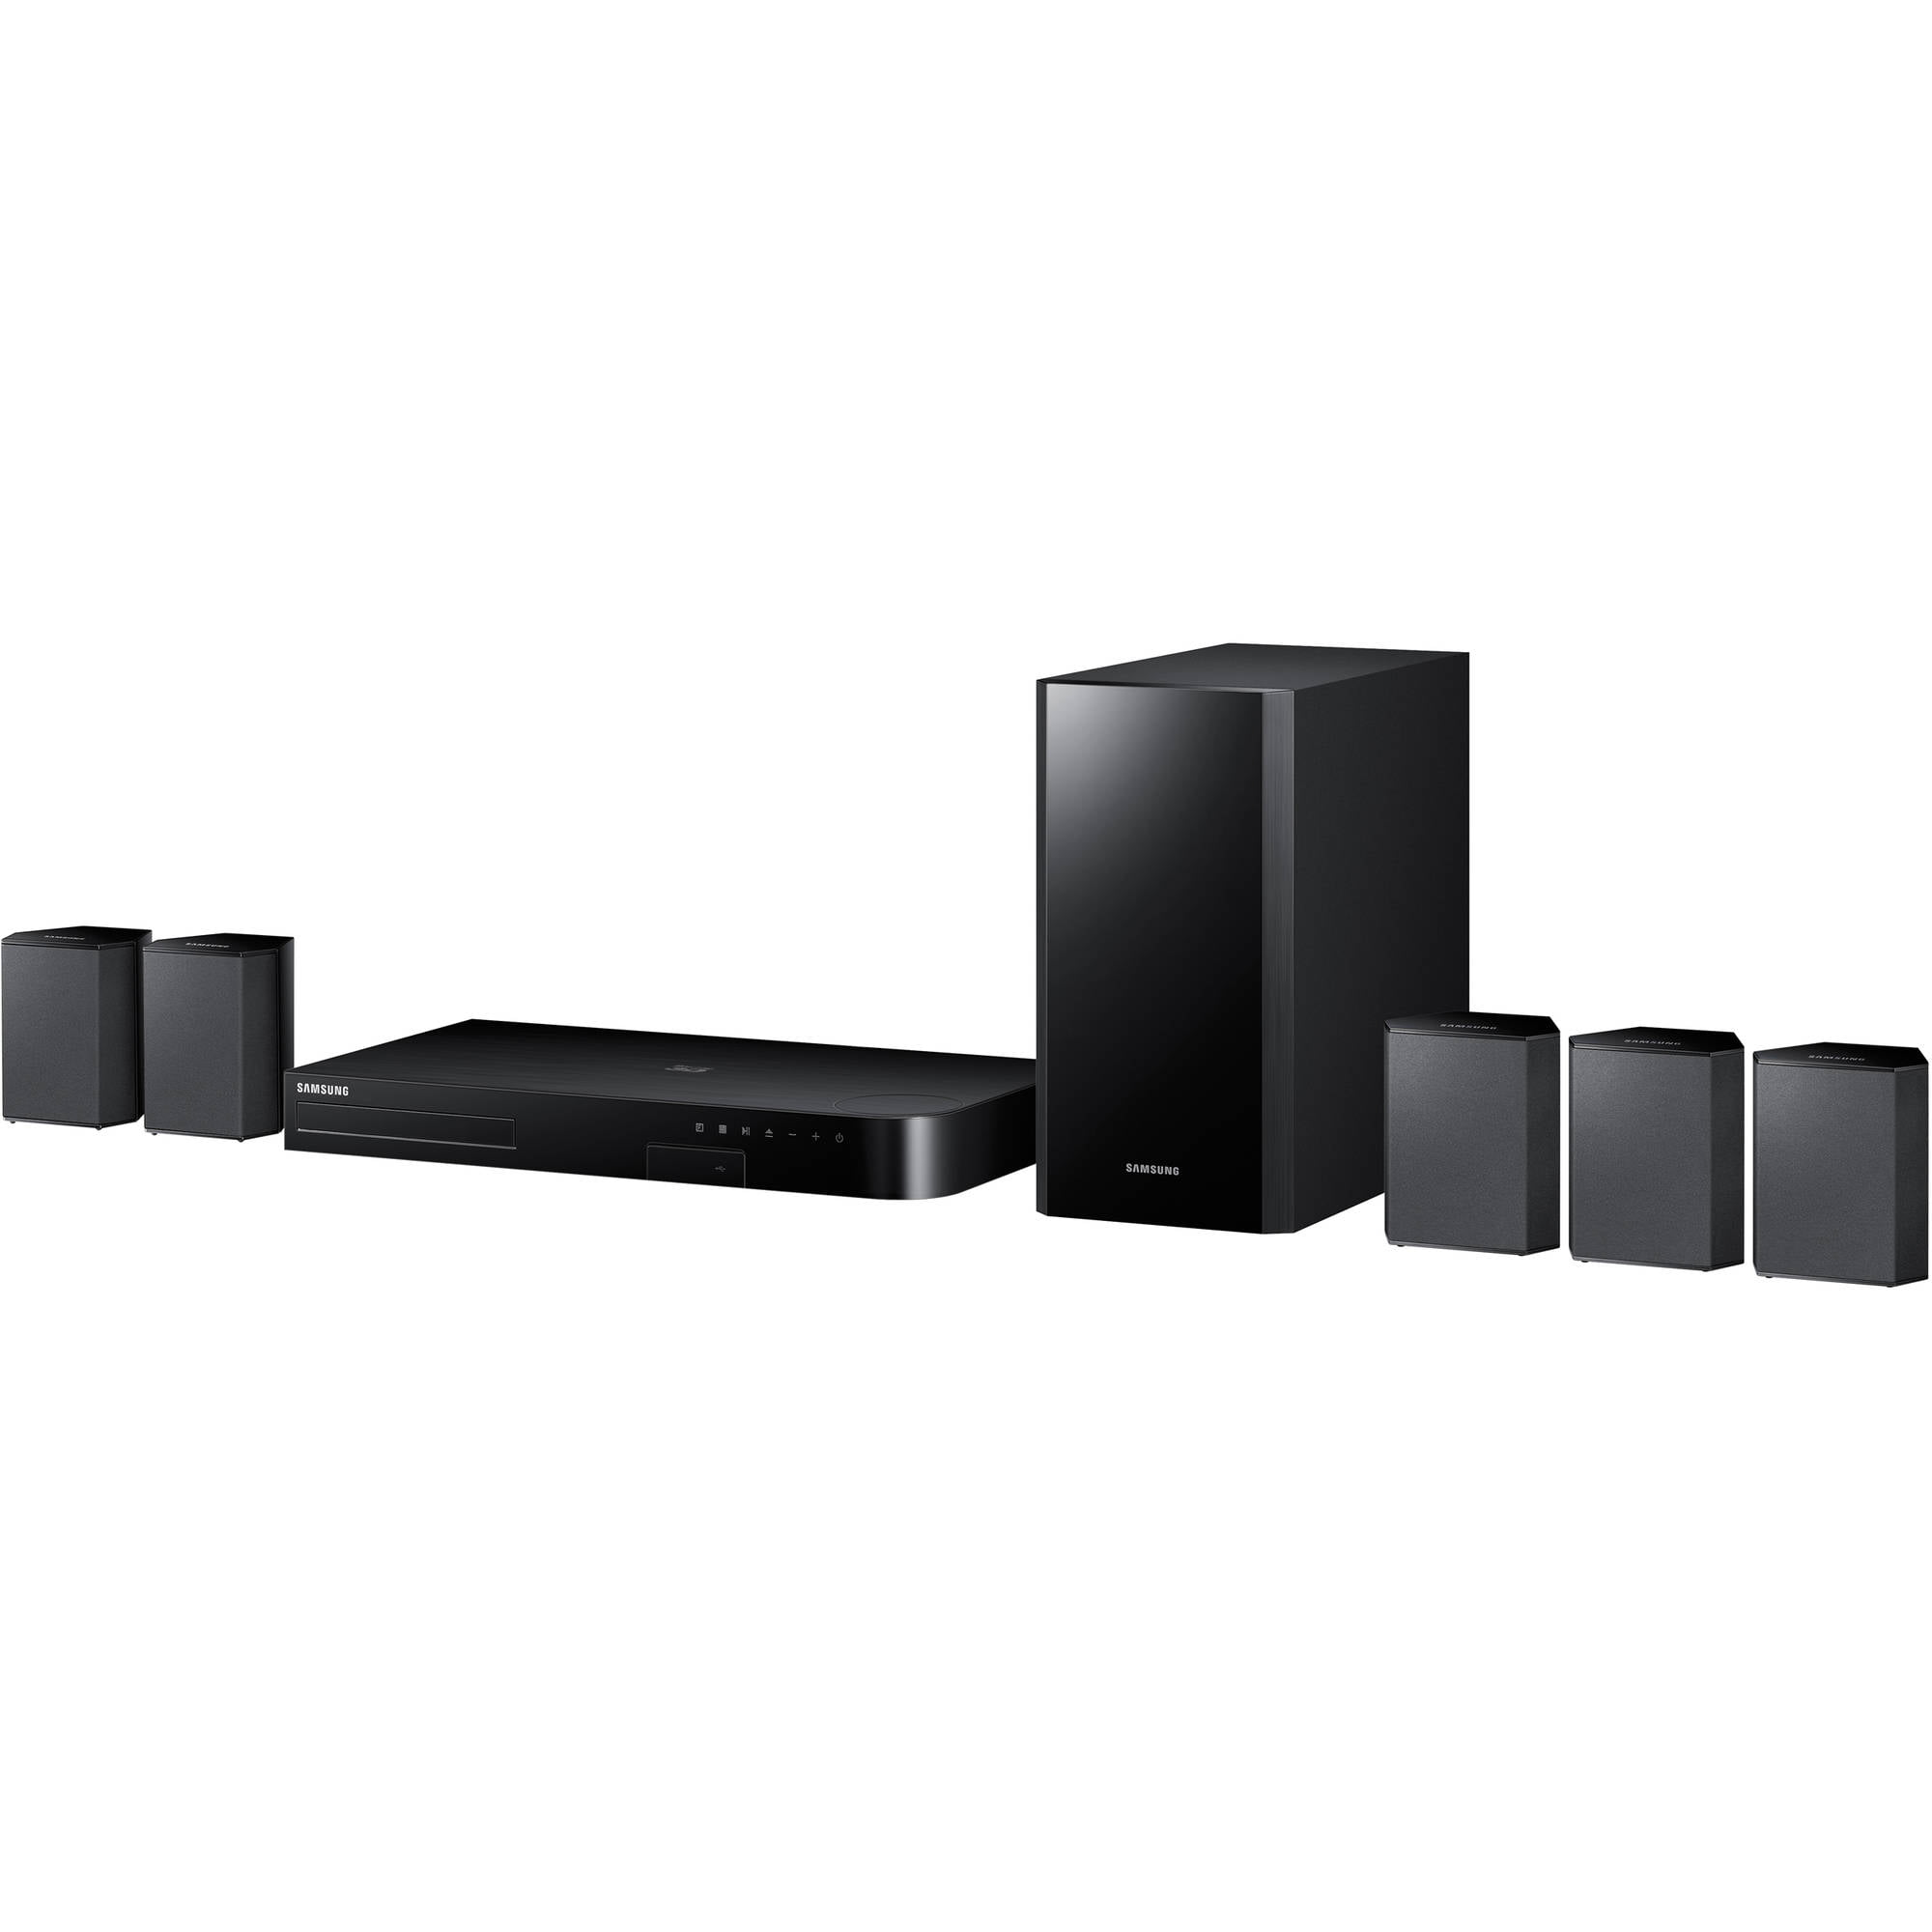 Samsung HT-J4500 5.1-Channel Smart Blu-ray Home Theater System (HT-J4500)